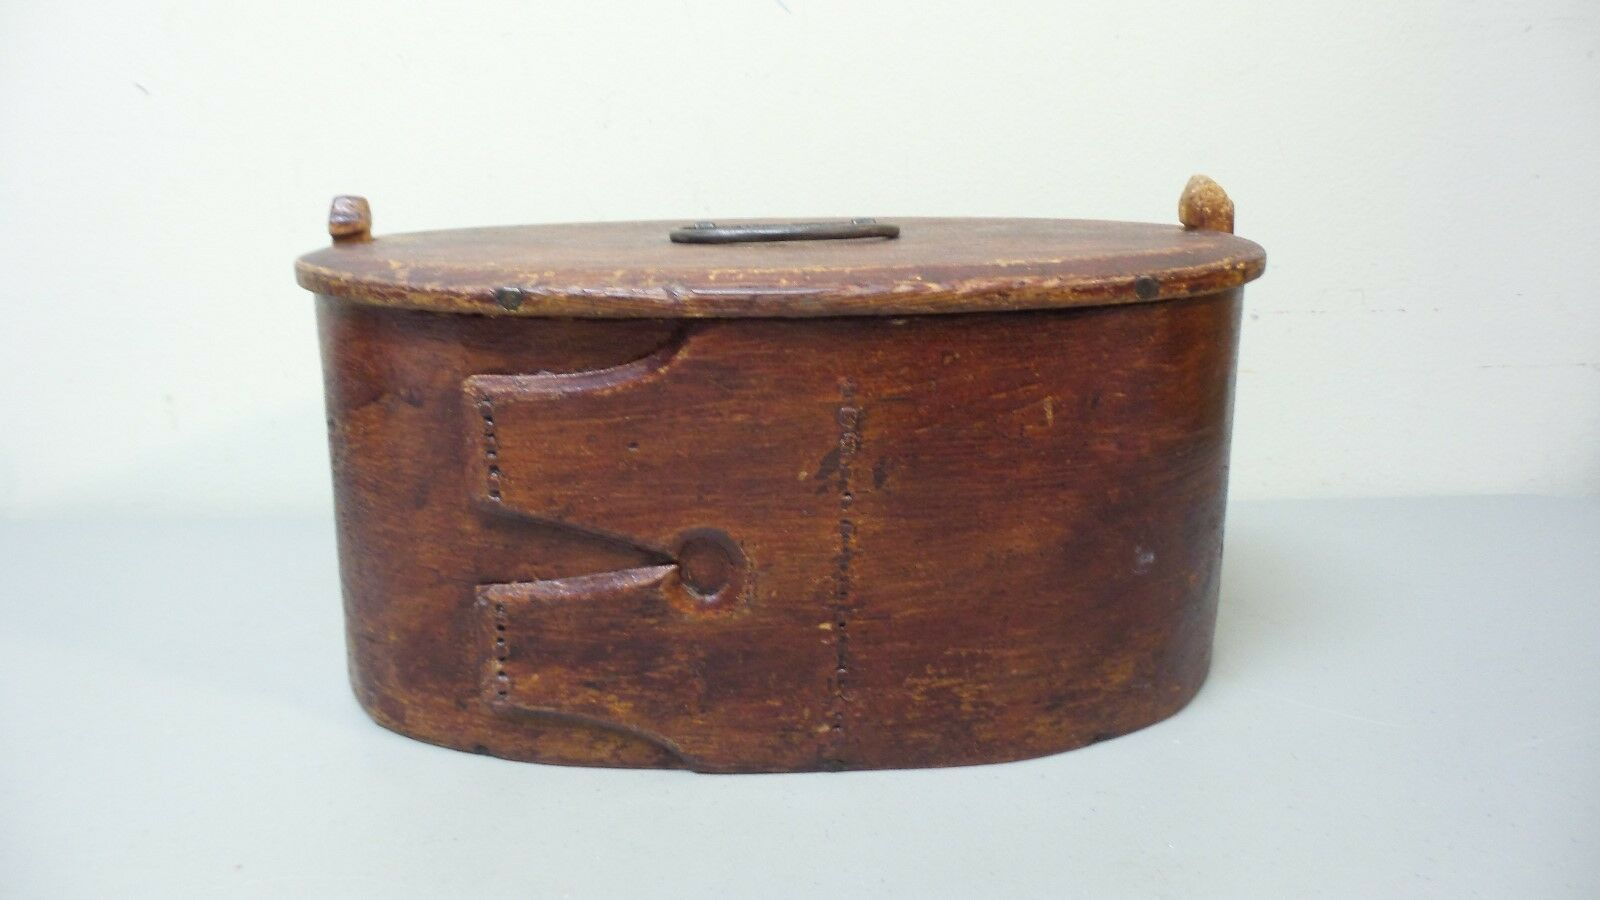 EARLY 19TH CENTURY HAND MADE WOODEN SWEDISH PAINTED BRIDE'S BOX dated 1824